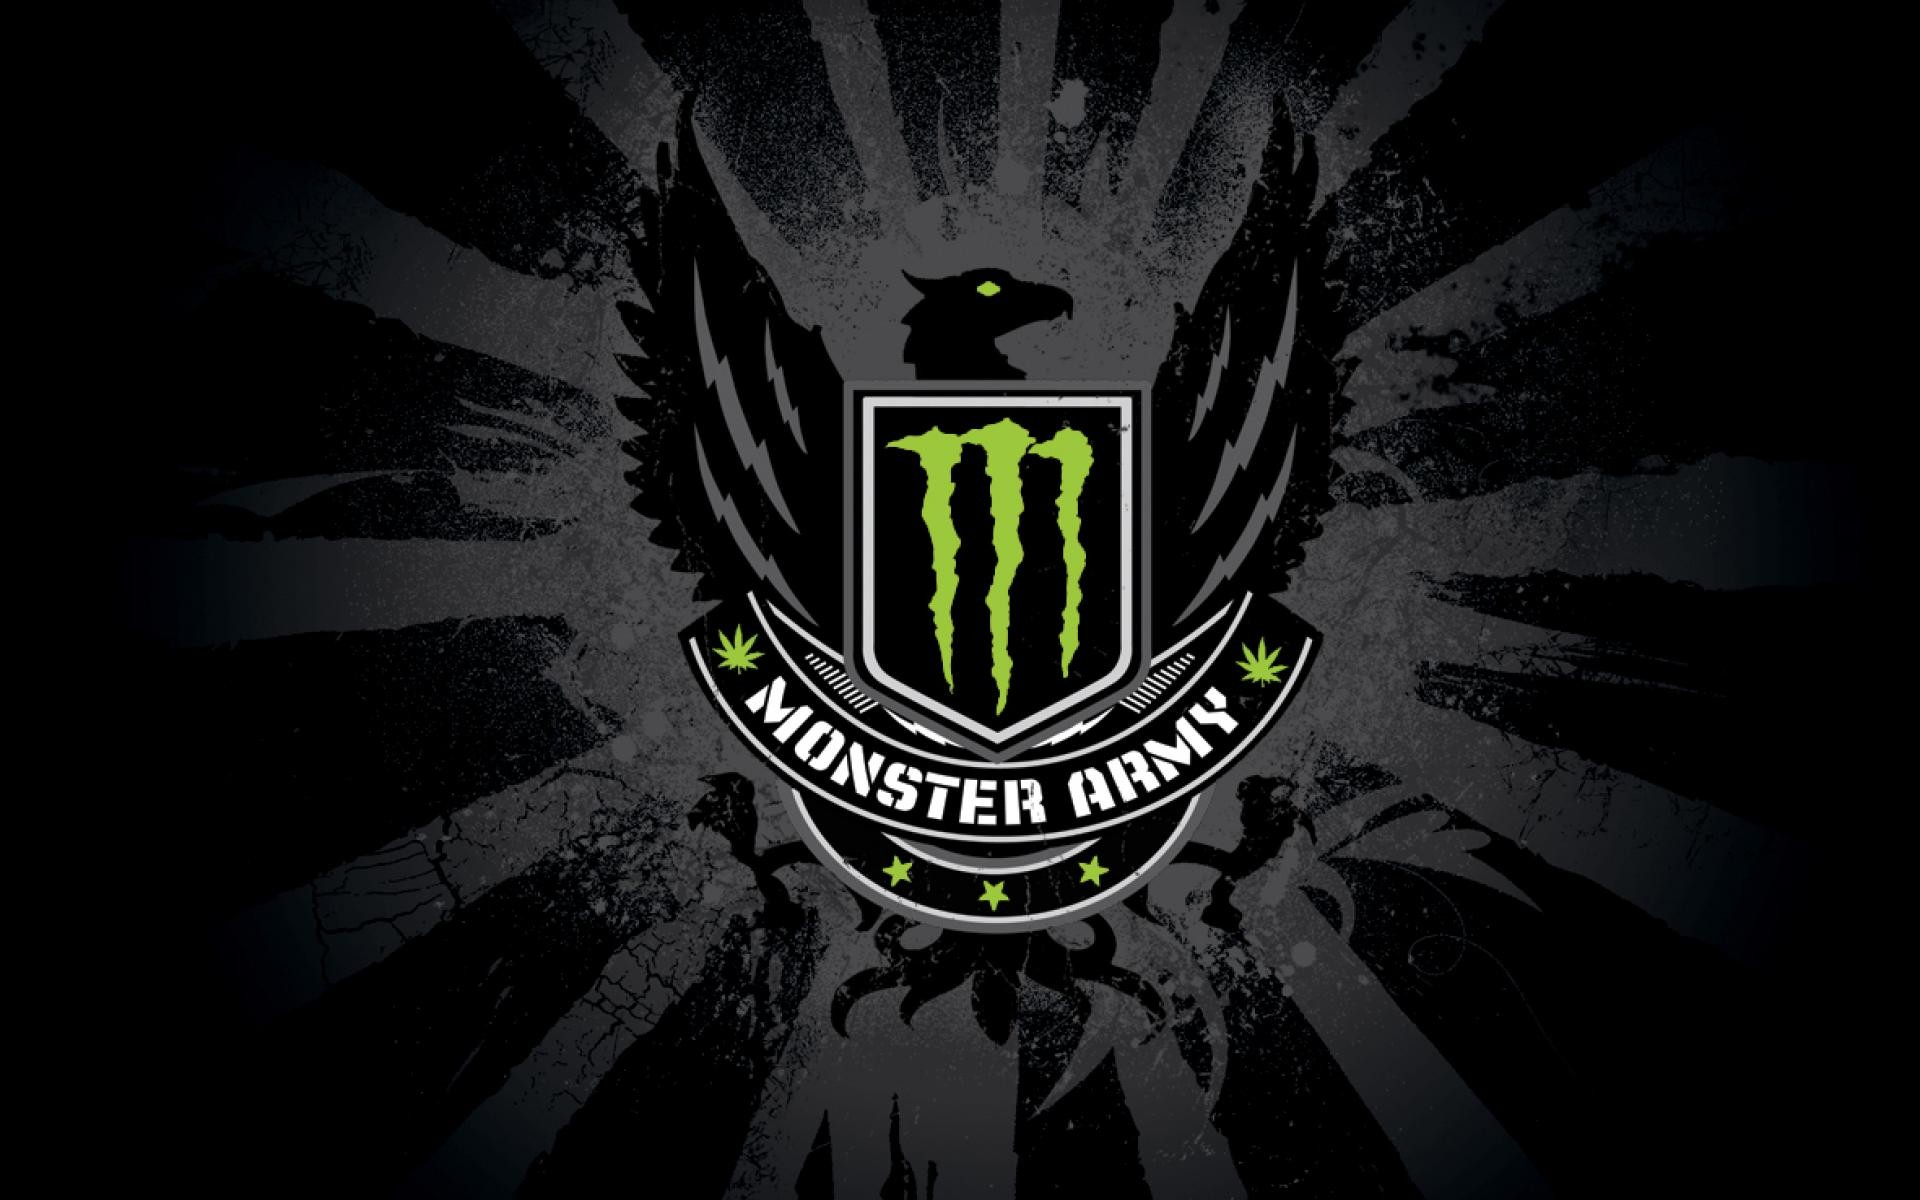 Cool monster energy wallpaper 76 images 1920x1080 1920x1080 monster energy wallpaper collection for free download voltagebd Choice Image